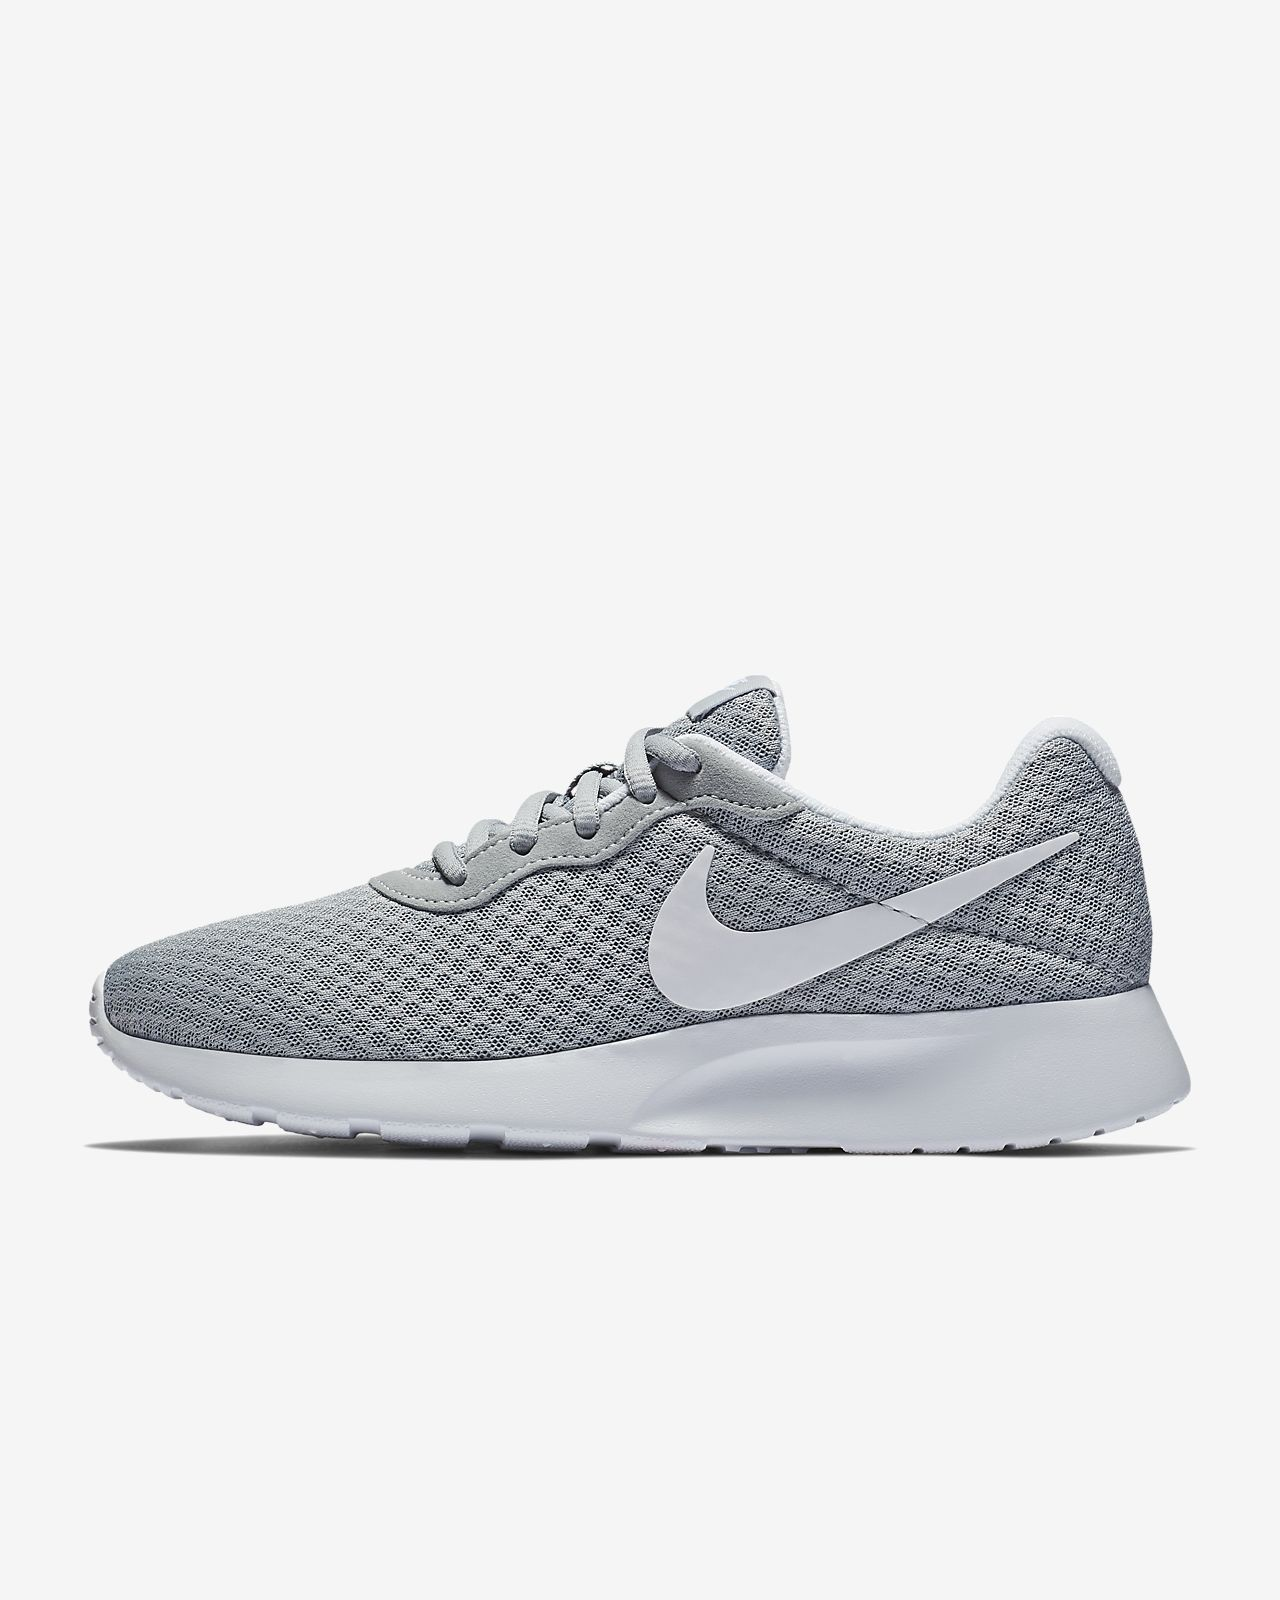 size 40 1d72d 90dde Low Resolution Nike Tanjun Women s Shoe Nike Tanjun Women s Shoe